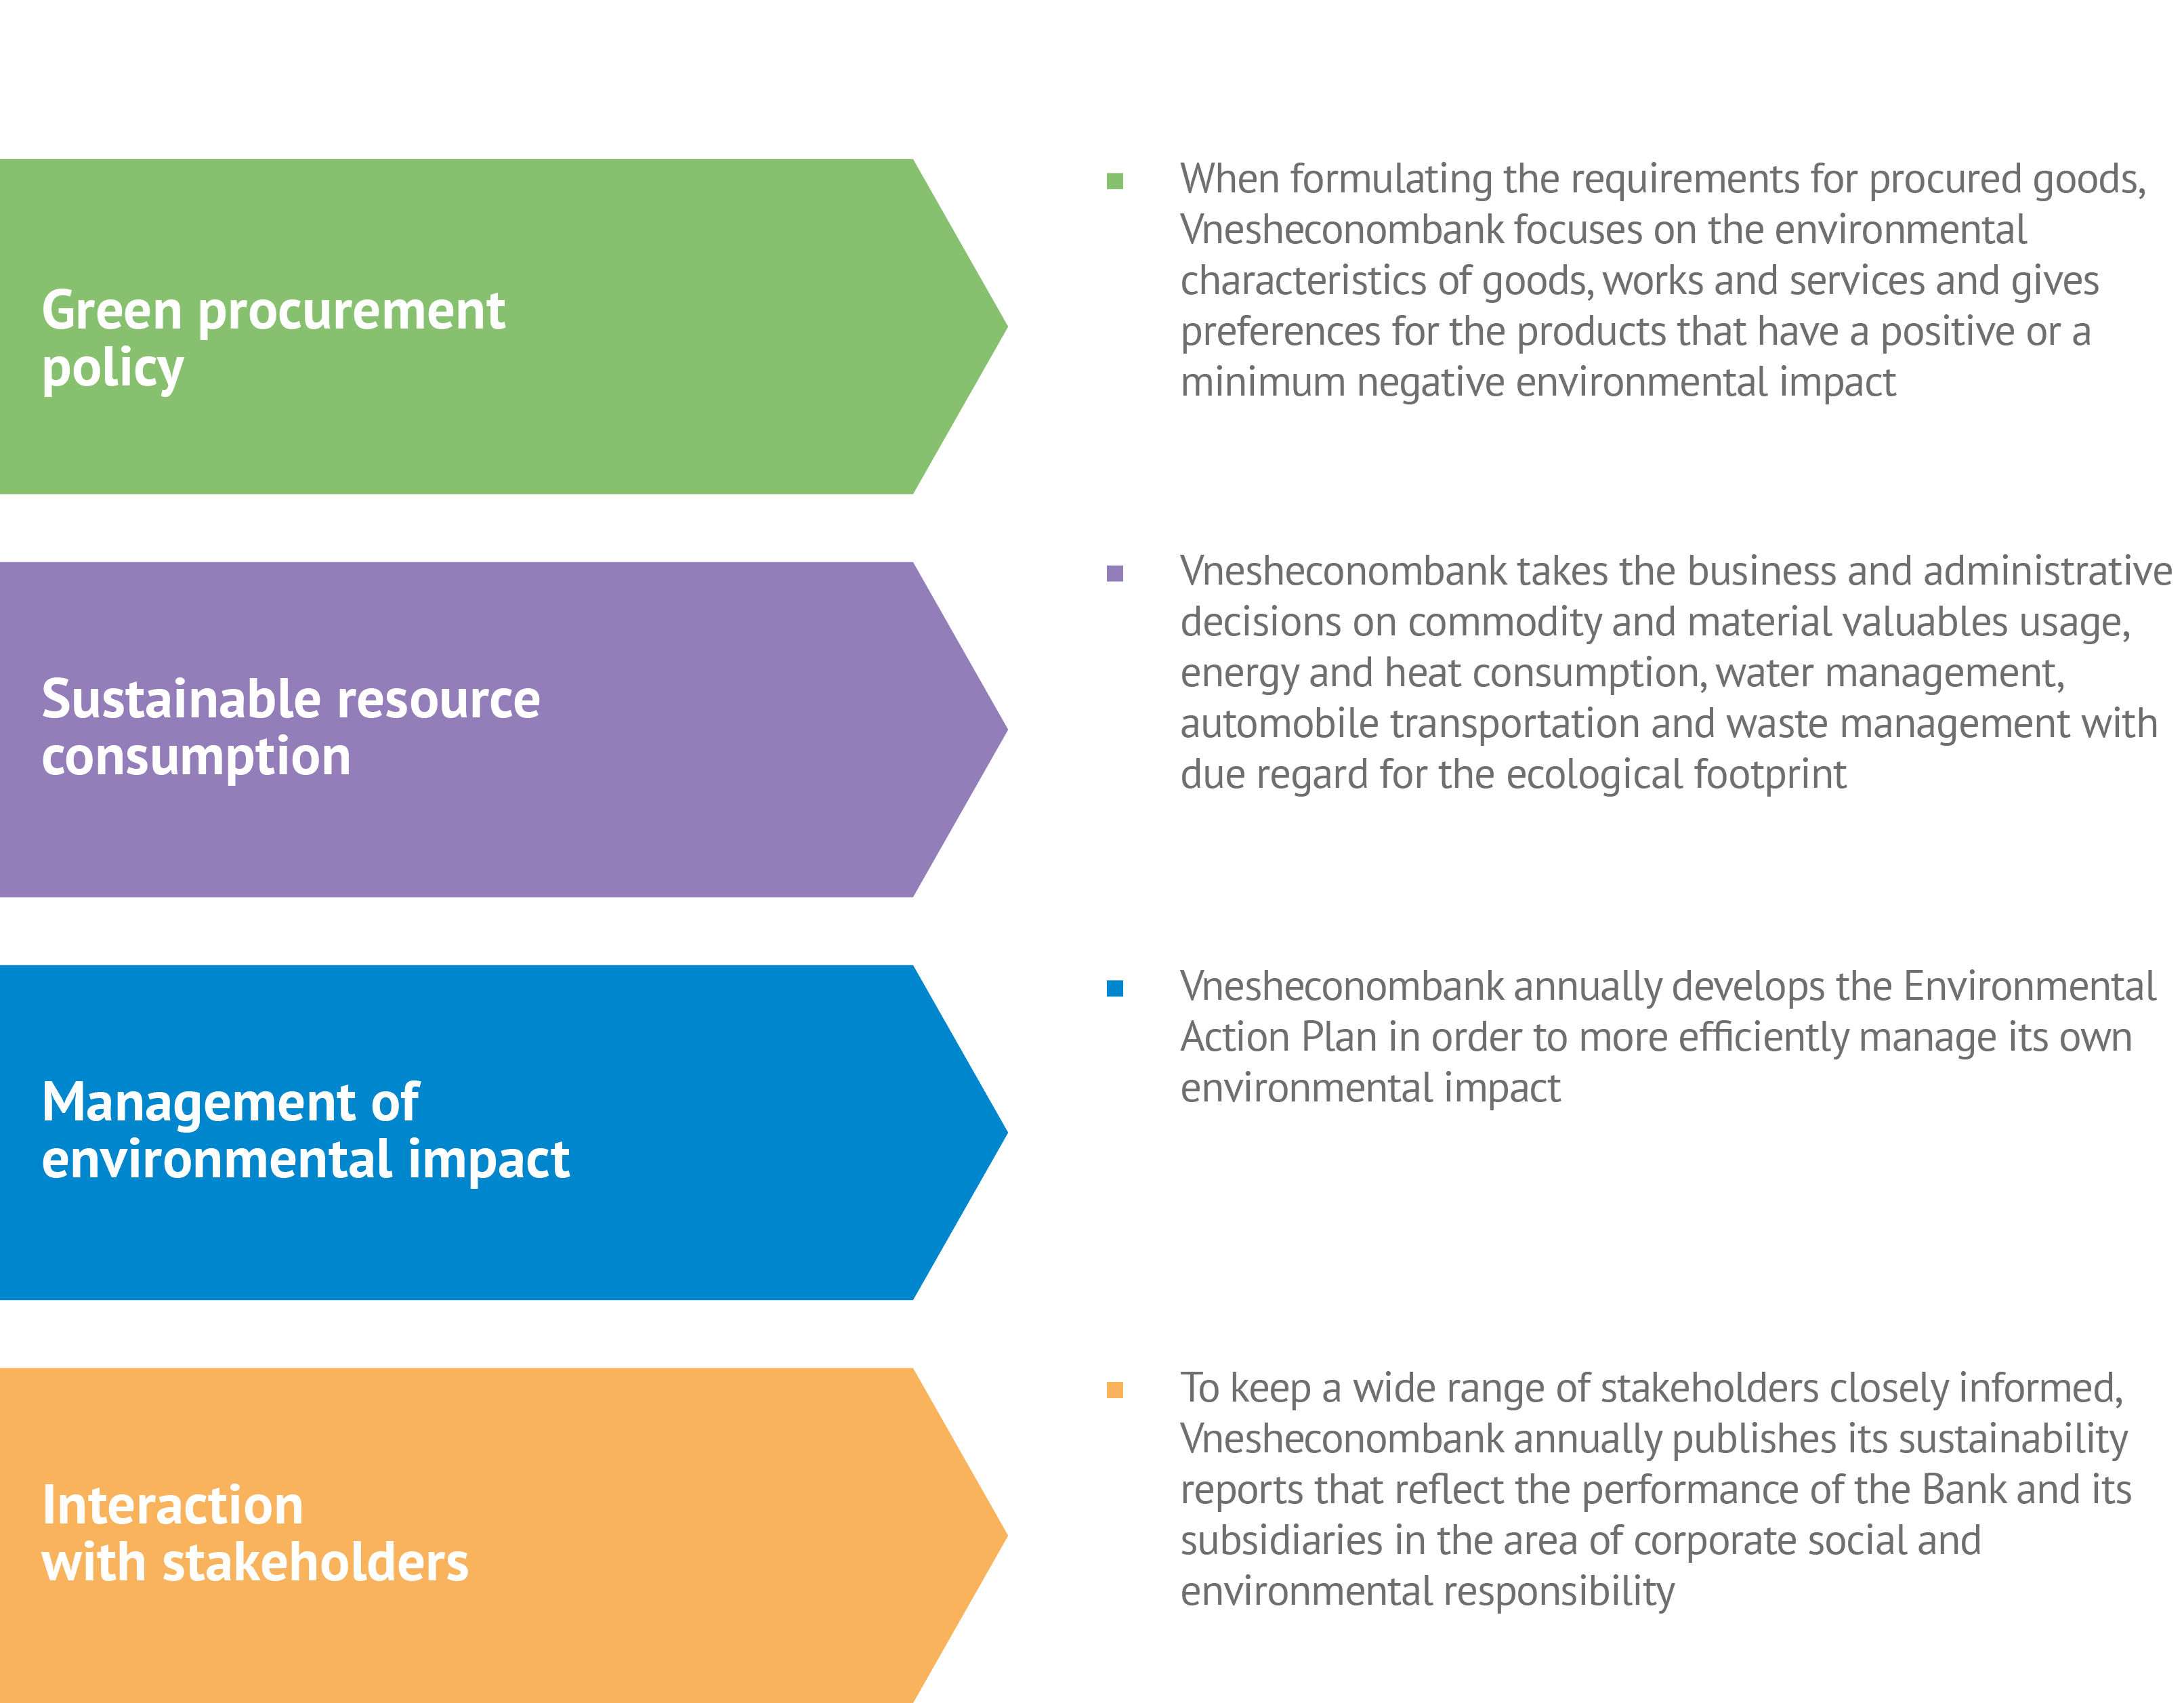 corporate environmental responsibility the performance of Measuring corporate environmental performance: the trade-offs of sustainability ratings magali delmas university in this paper, we focus on the environmental dimension of social responsibility and evaluate various criteria to compare firms' environmental.